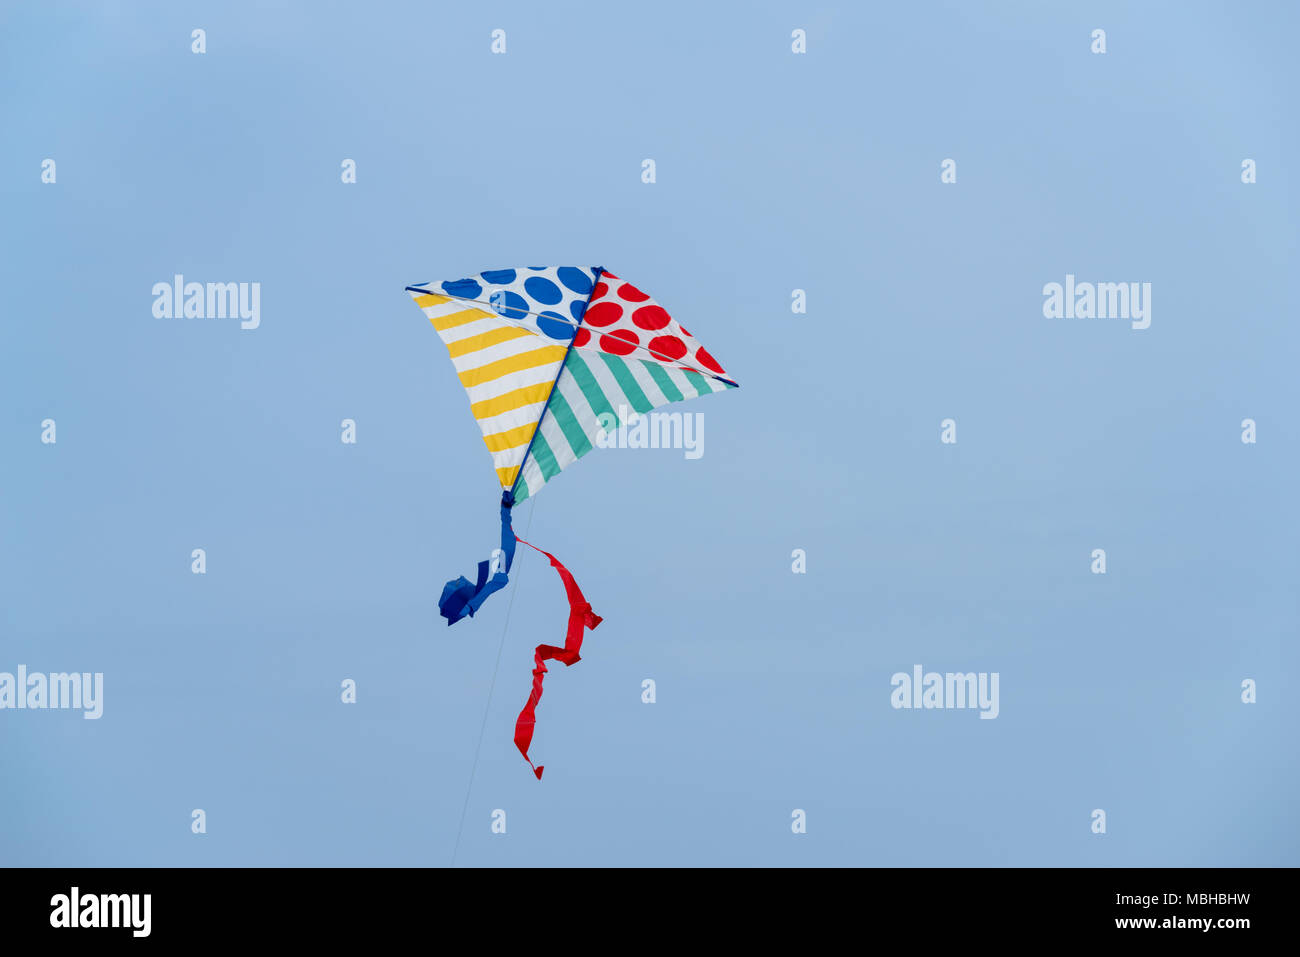 Low angle view of kite flying against clear sky - Stock Image